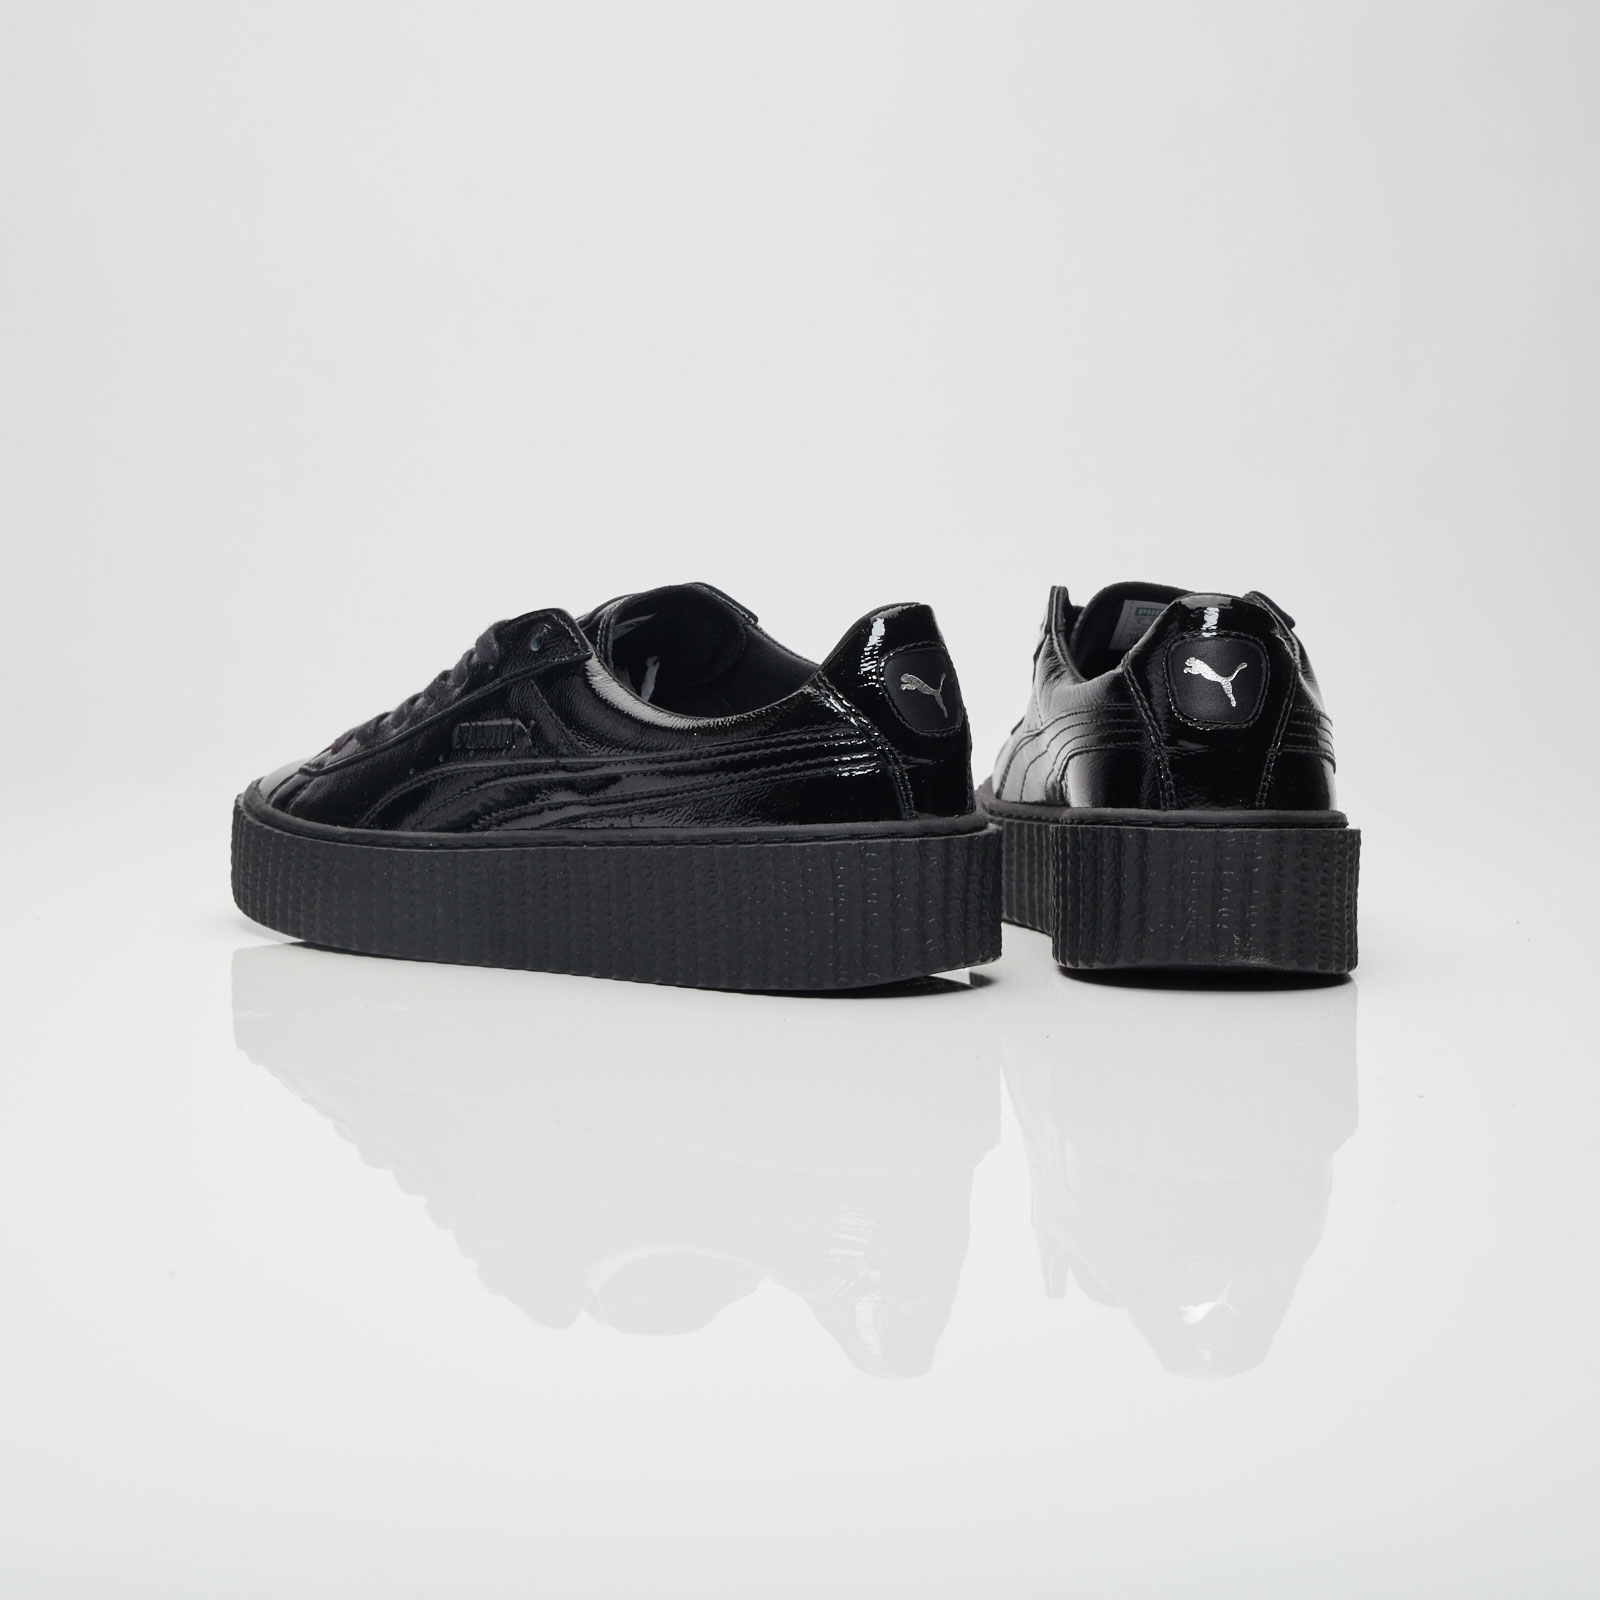 45ad33367ed Puma Creeper Cracked Leather - 364465-01 - Sneakersnstuff